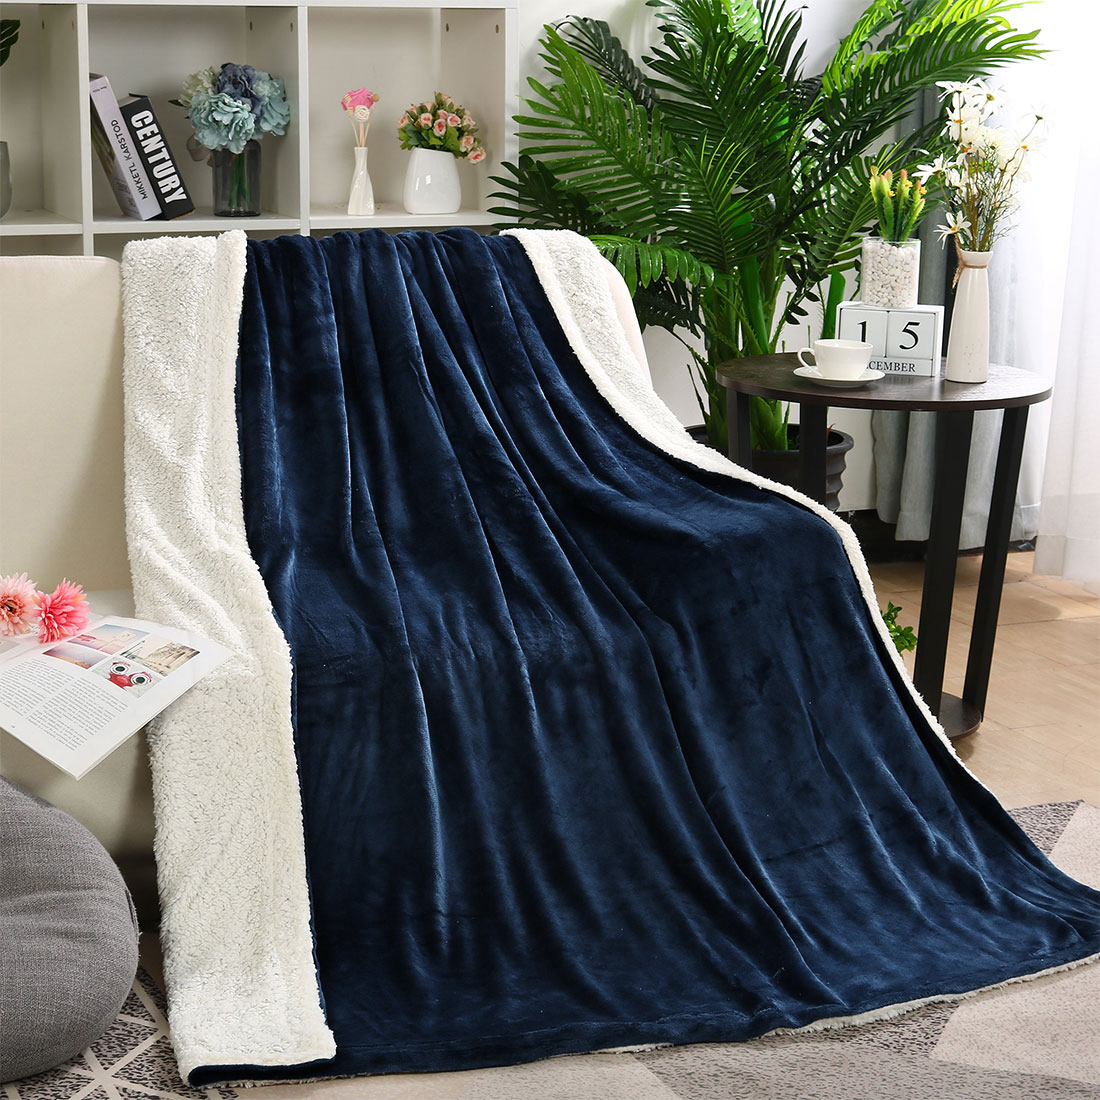 Soft Flannel Fleece Blanket Twin Size Bed Blanket Navy Blue White 59 X78 Bedding For Home Walmart Com Walmart Com